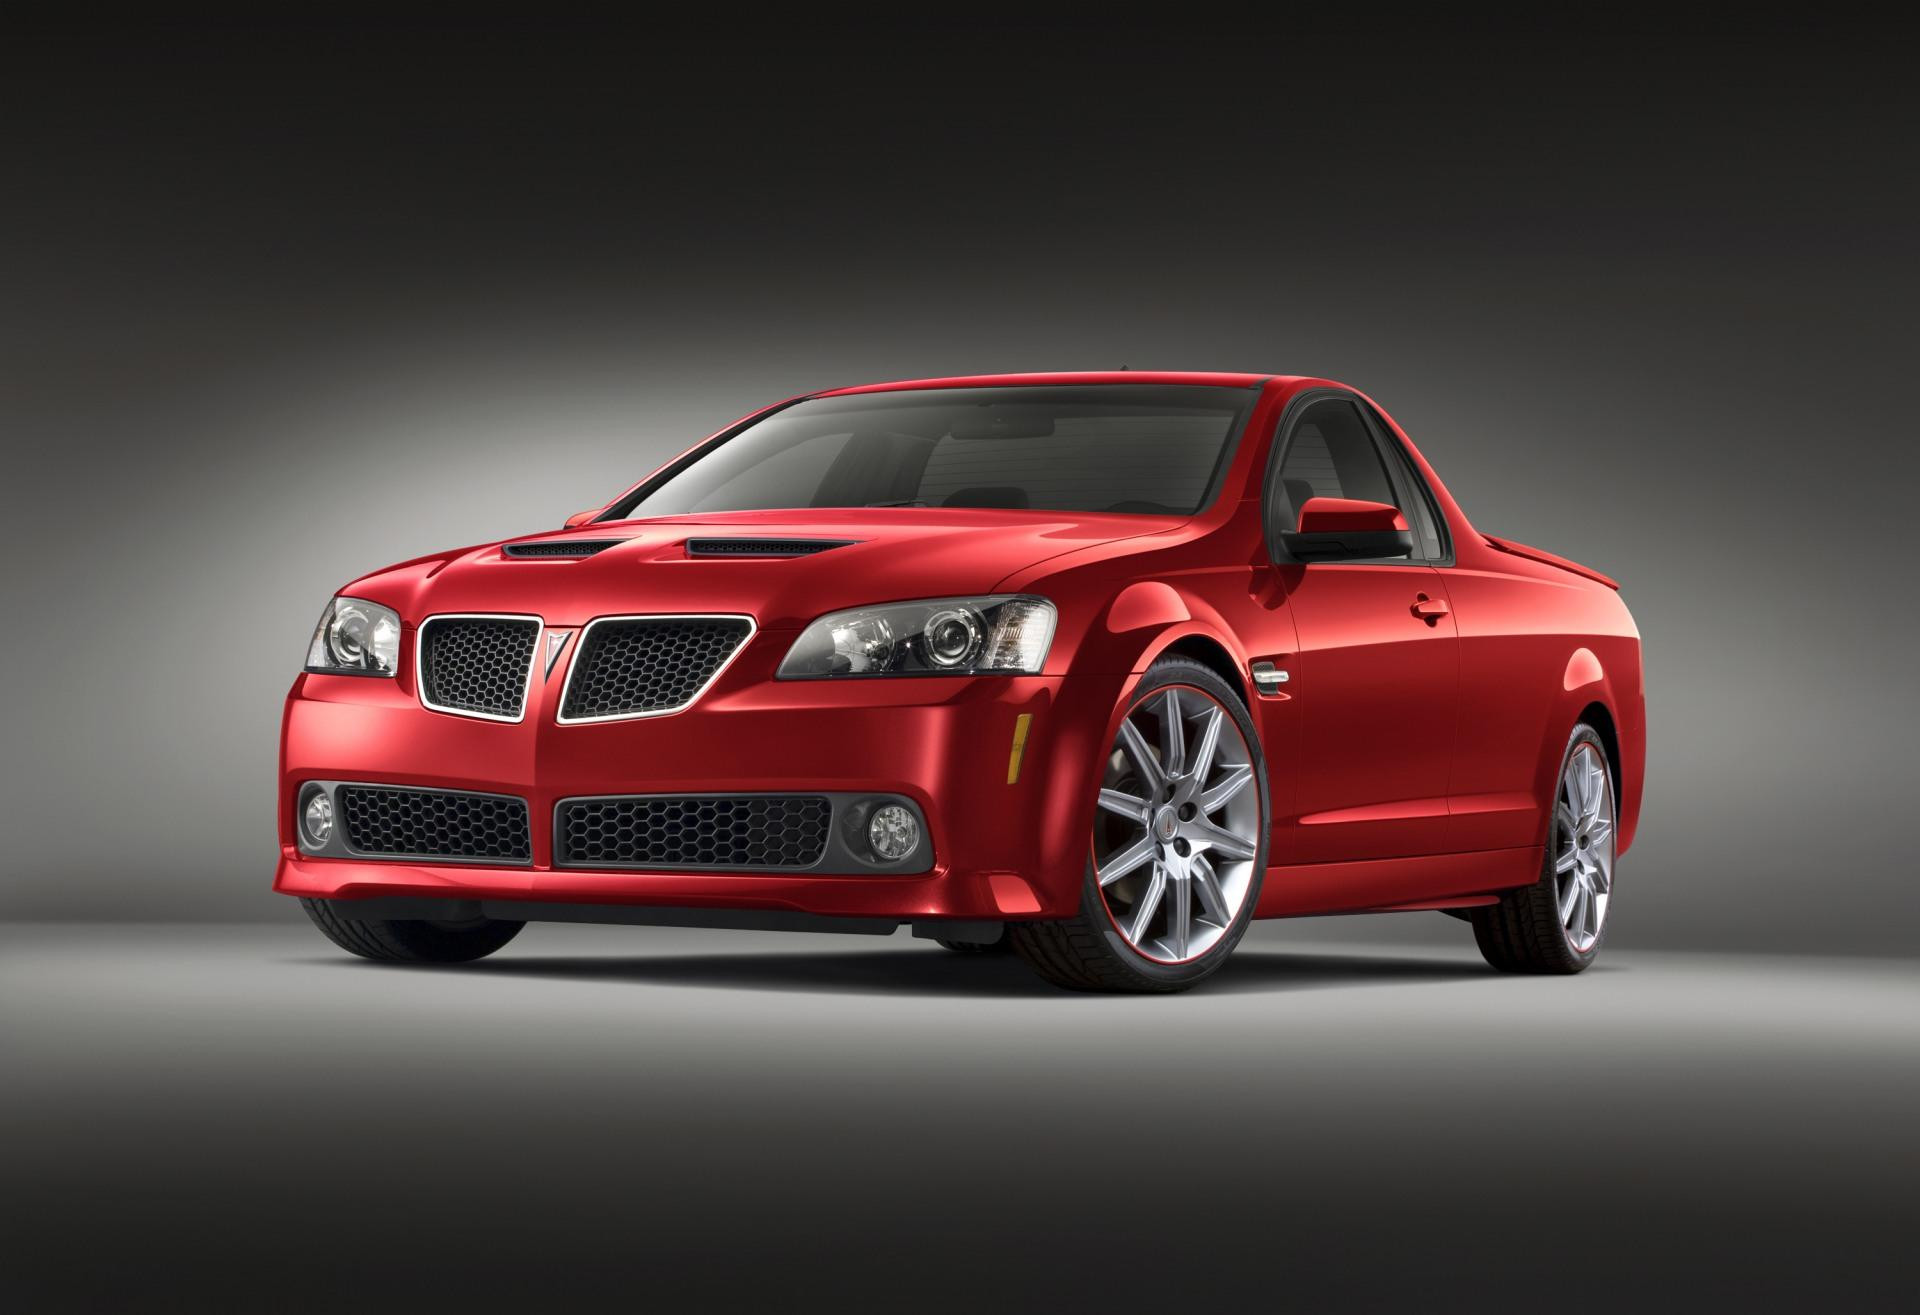 2009 Pontiac G8 St Concept News And Information Research And History Conceptcarz Com